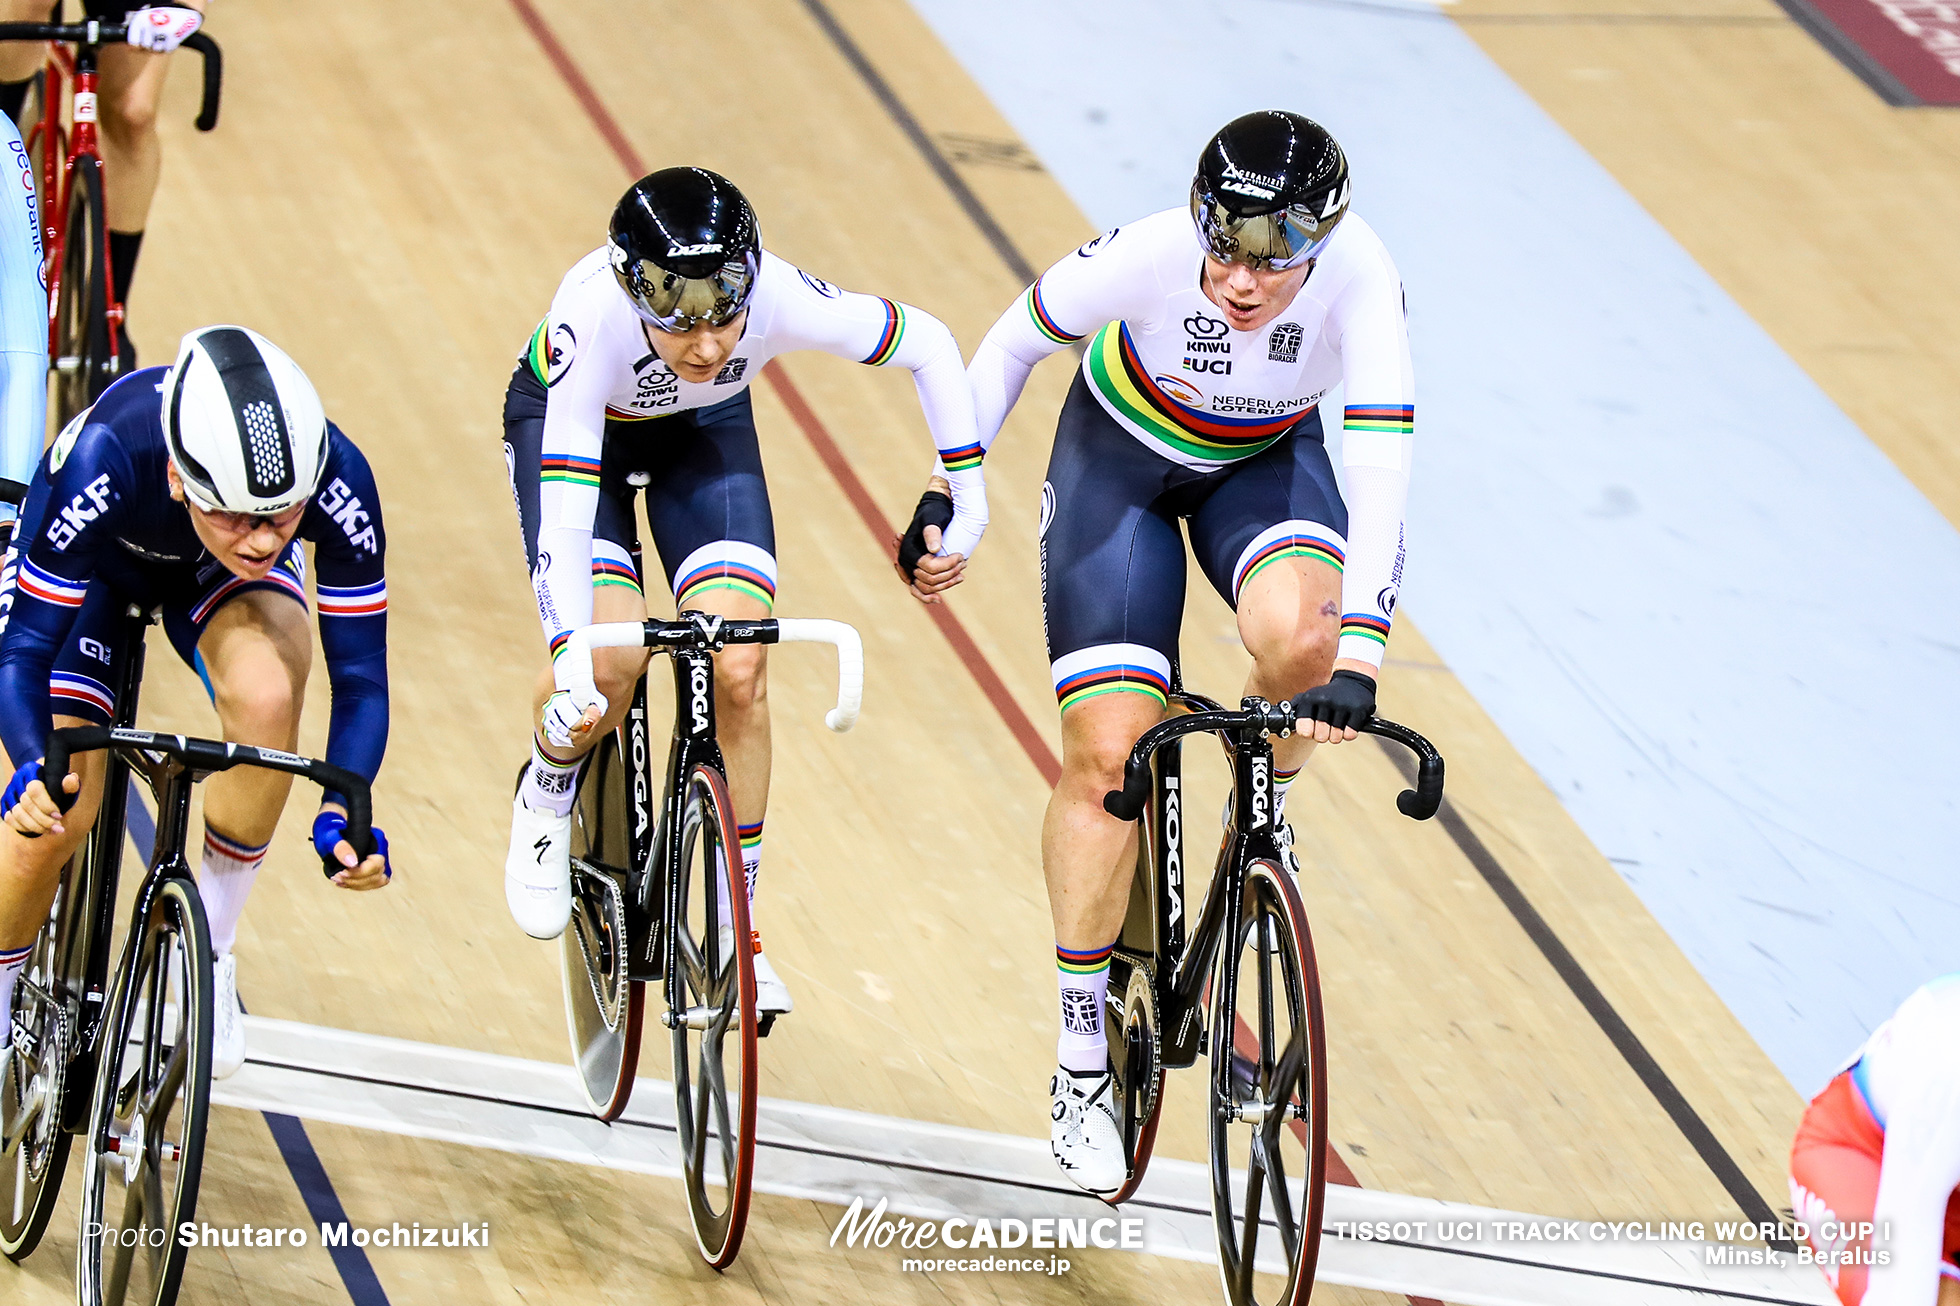 Women's Madison / TISSOT UCI TRACK CYCLING WORLD CUP I, Minsk, Beralus